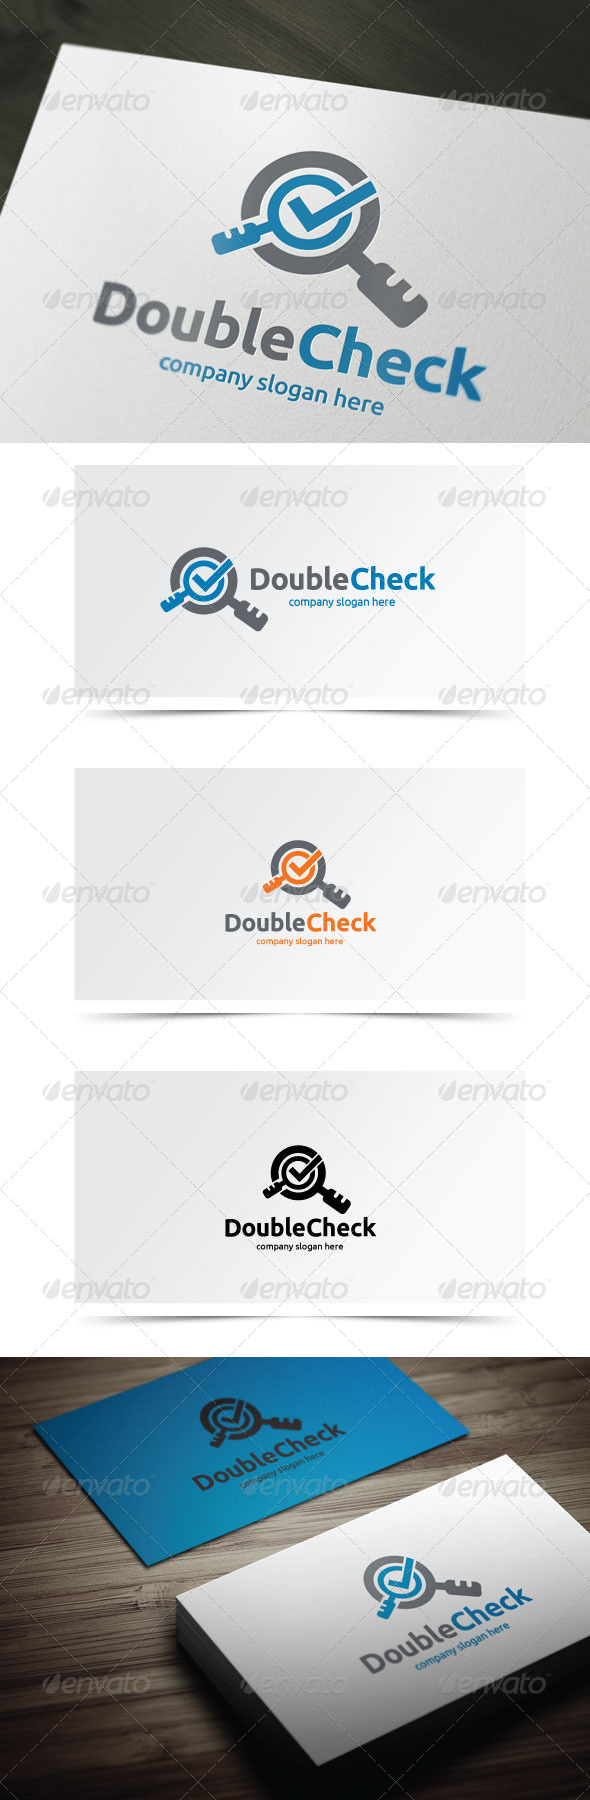 GraphicRiver Double Check 6363799